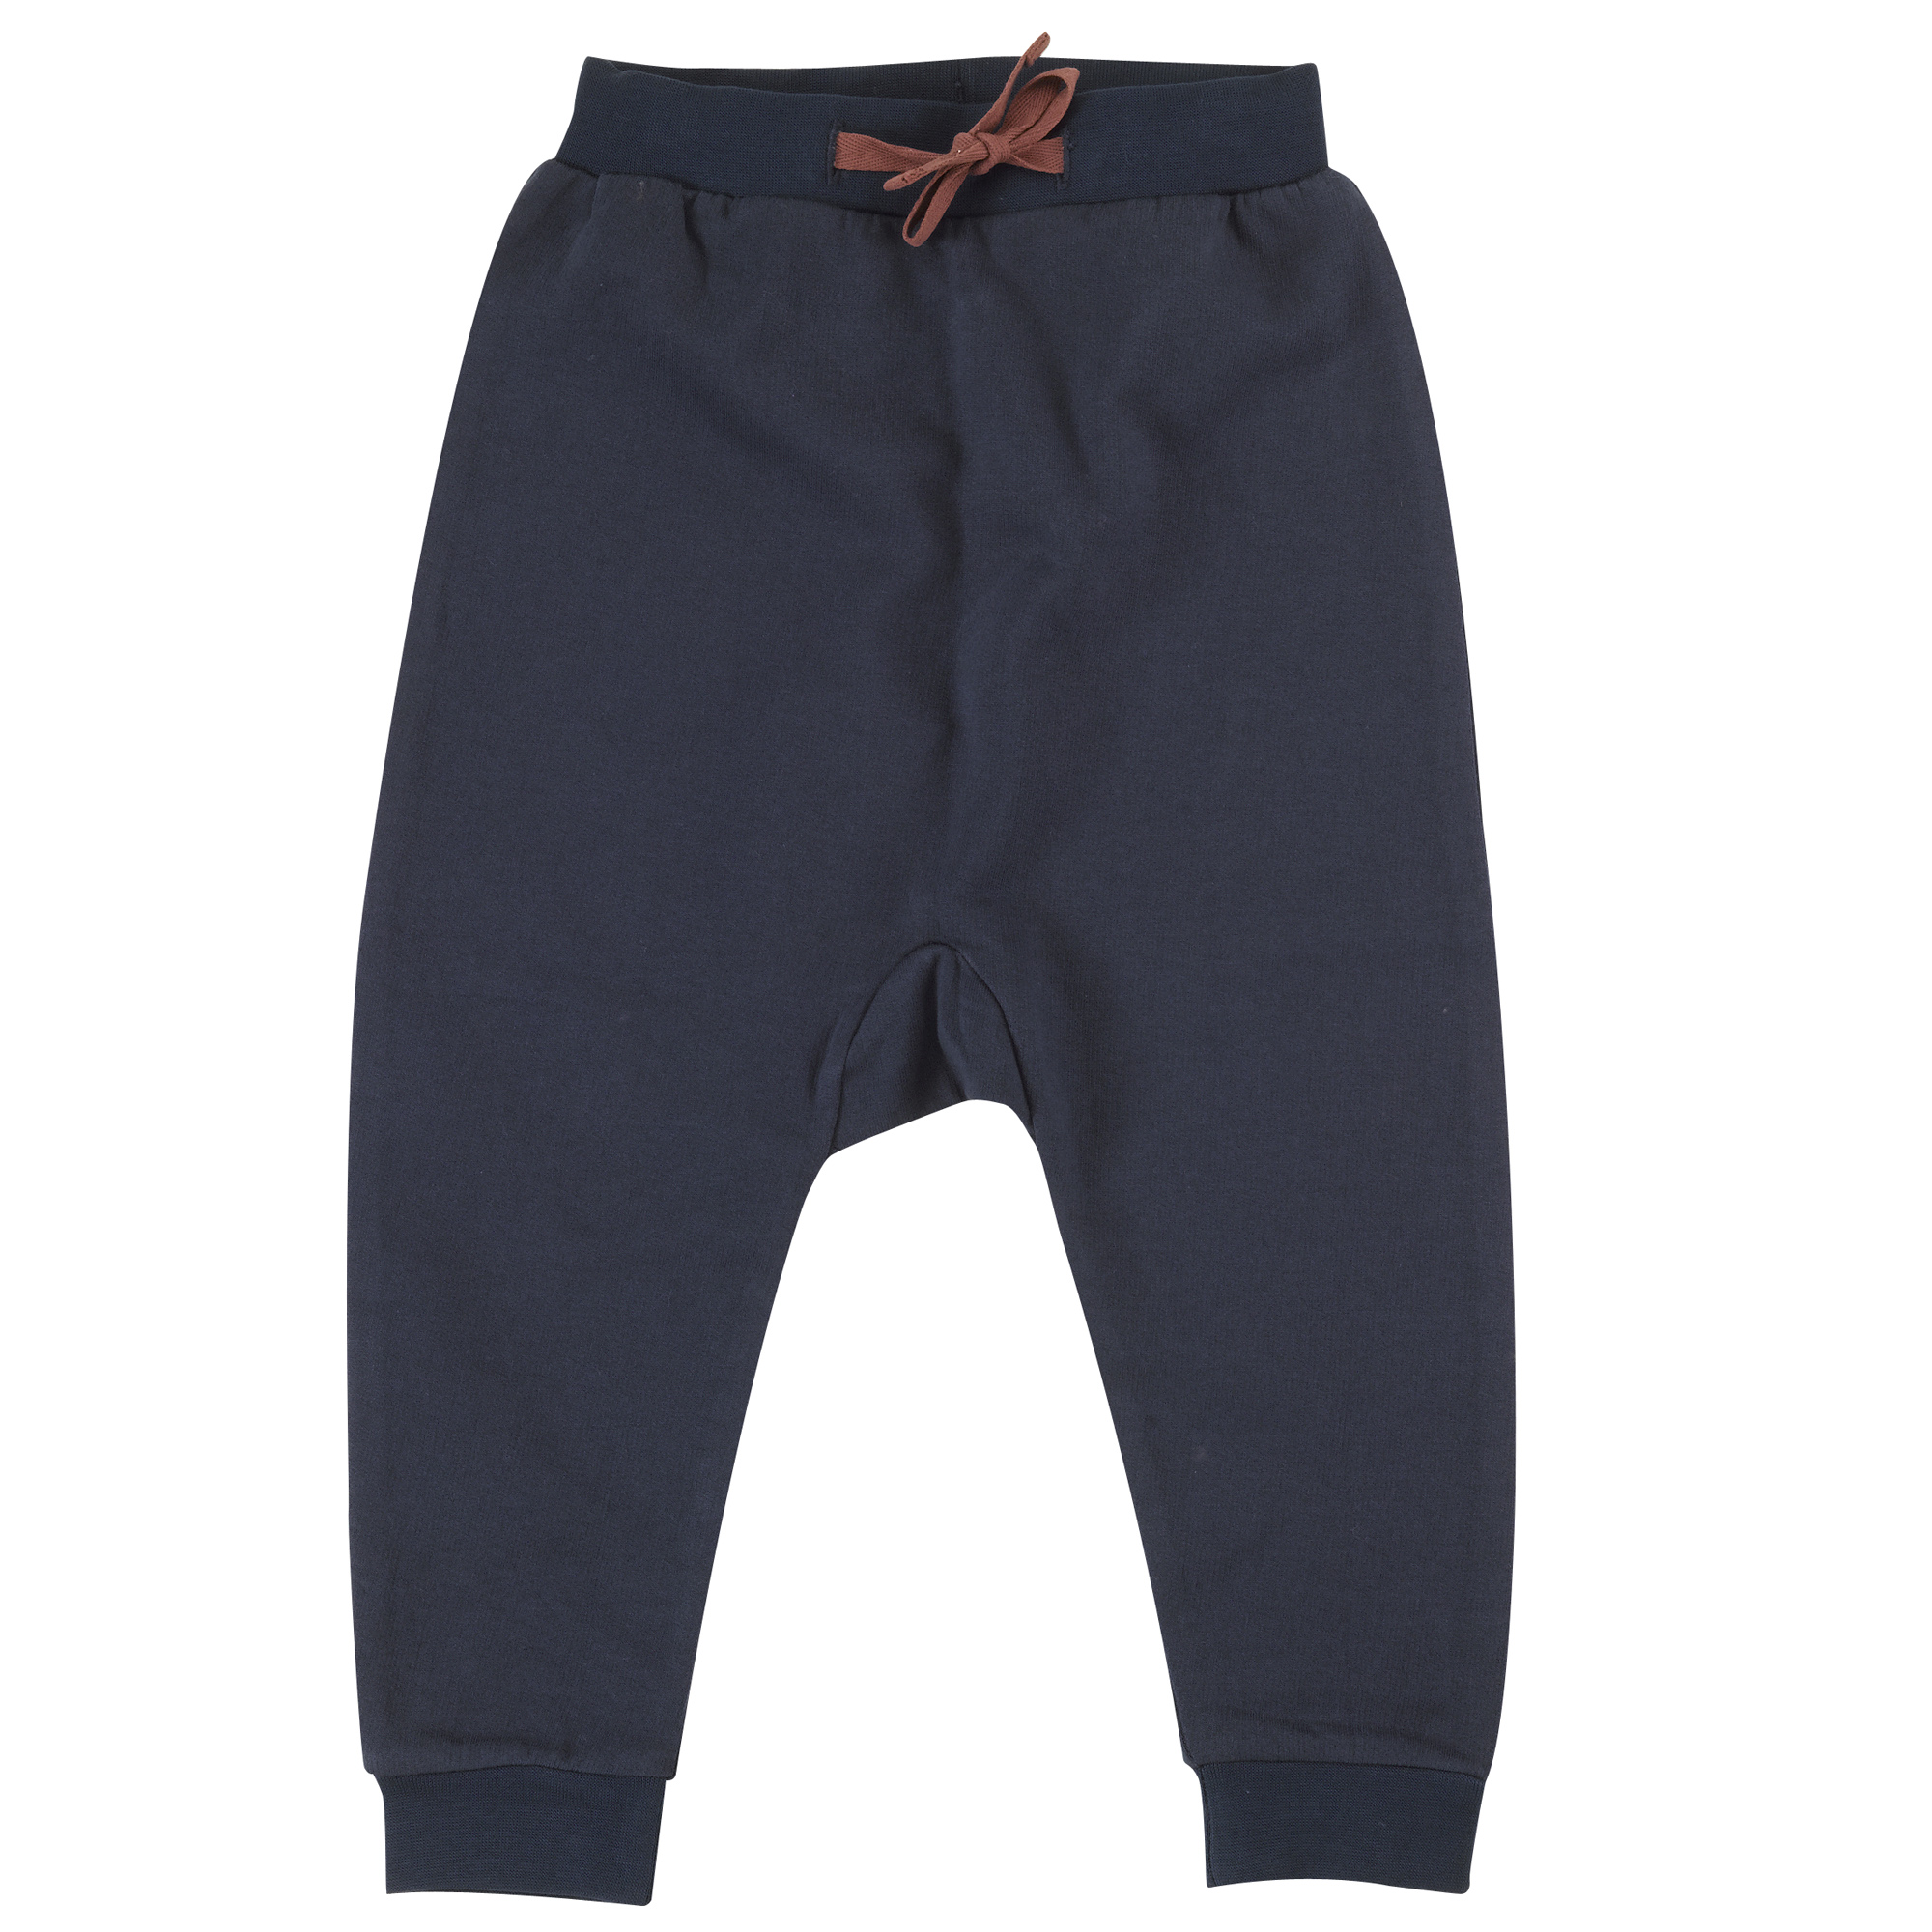 Pigeon - Slouchy joggers, ink blue,